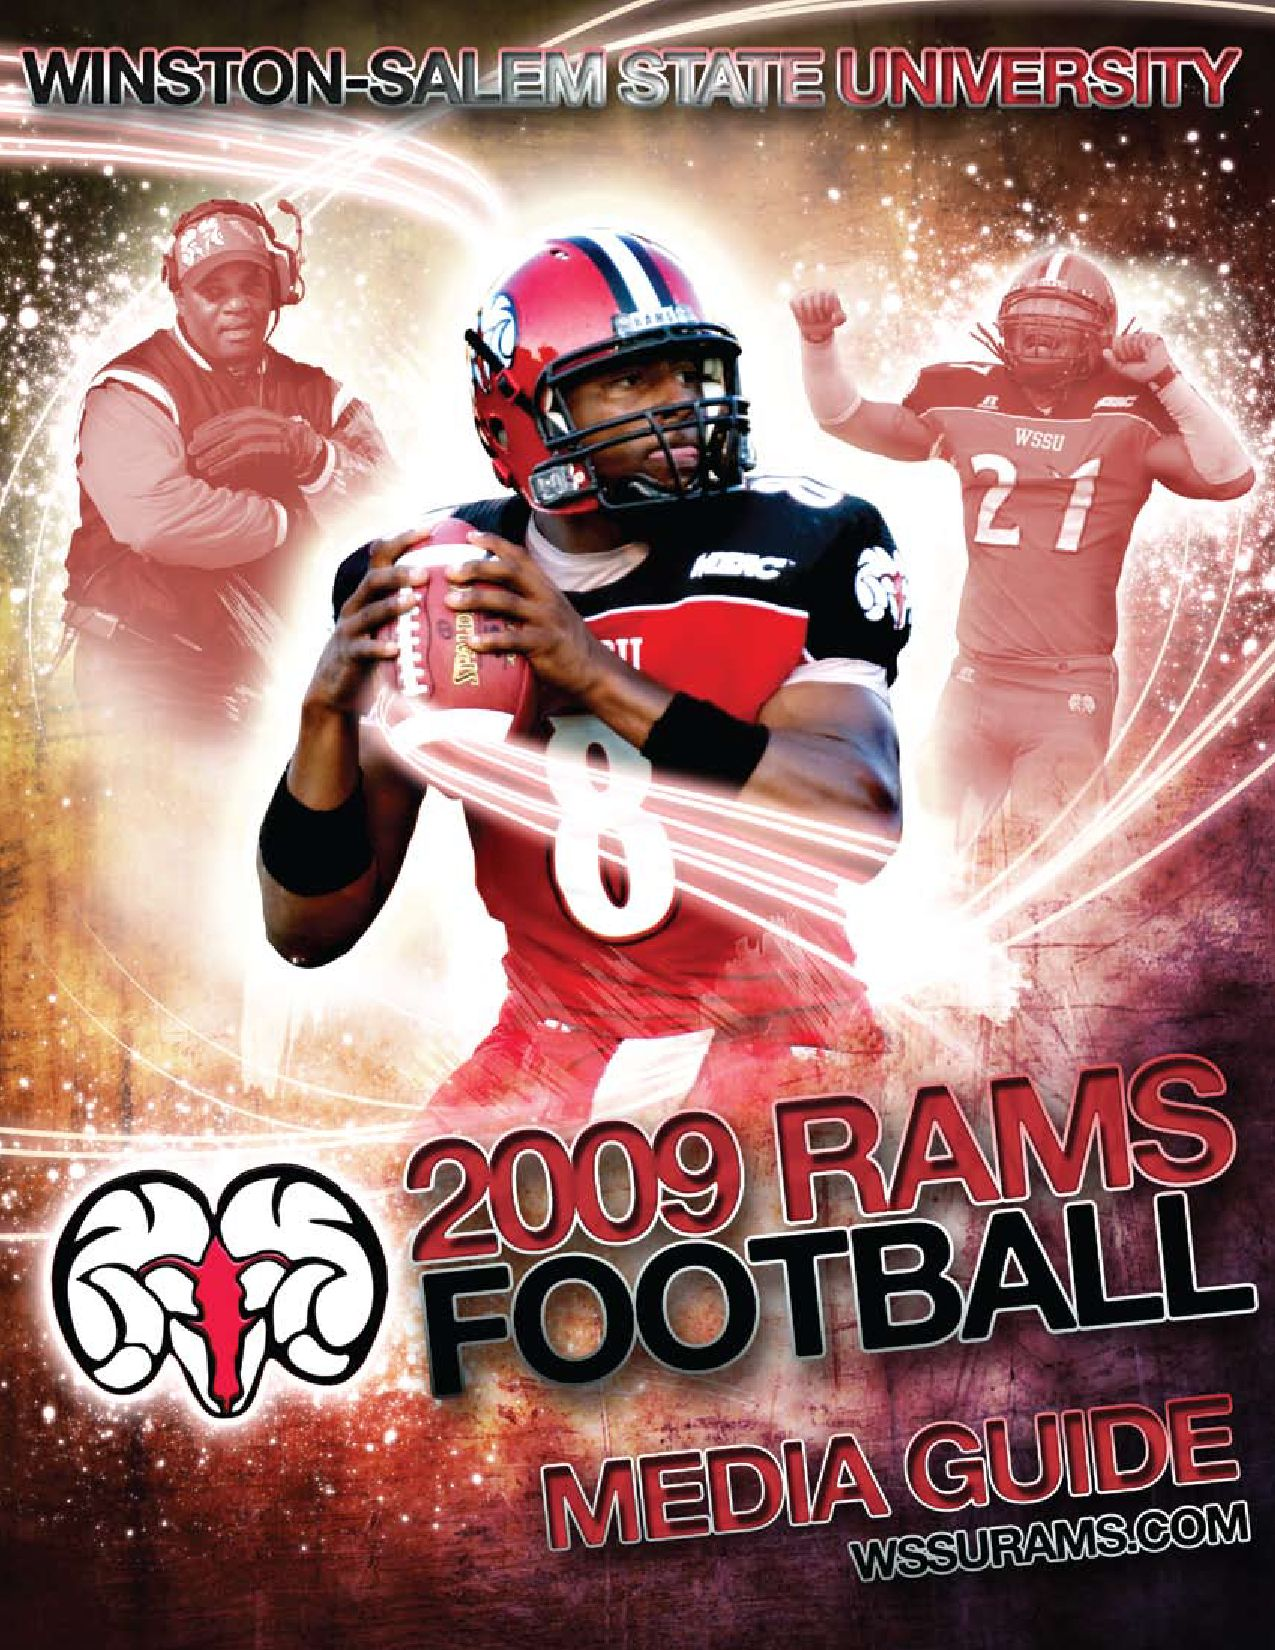 Hot 2009 WSSU Football Media Guide by Winston Salem State University